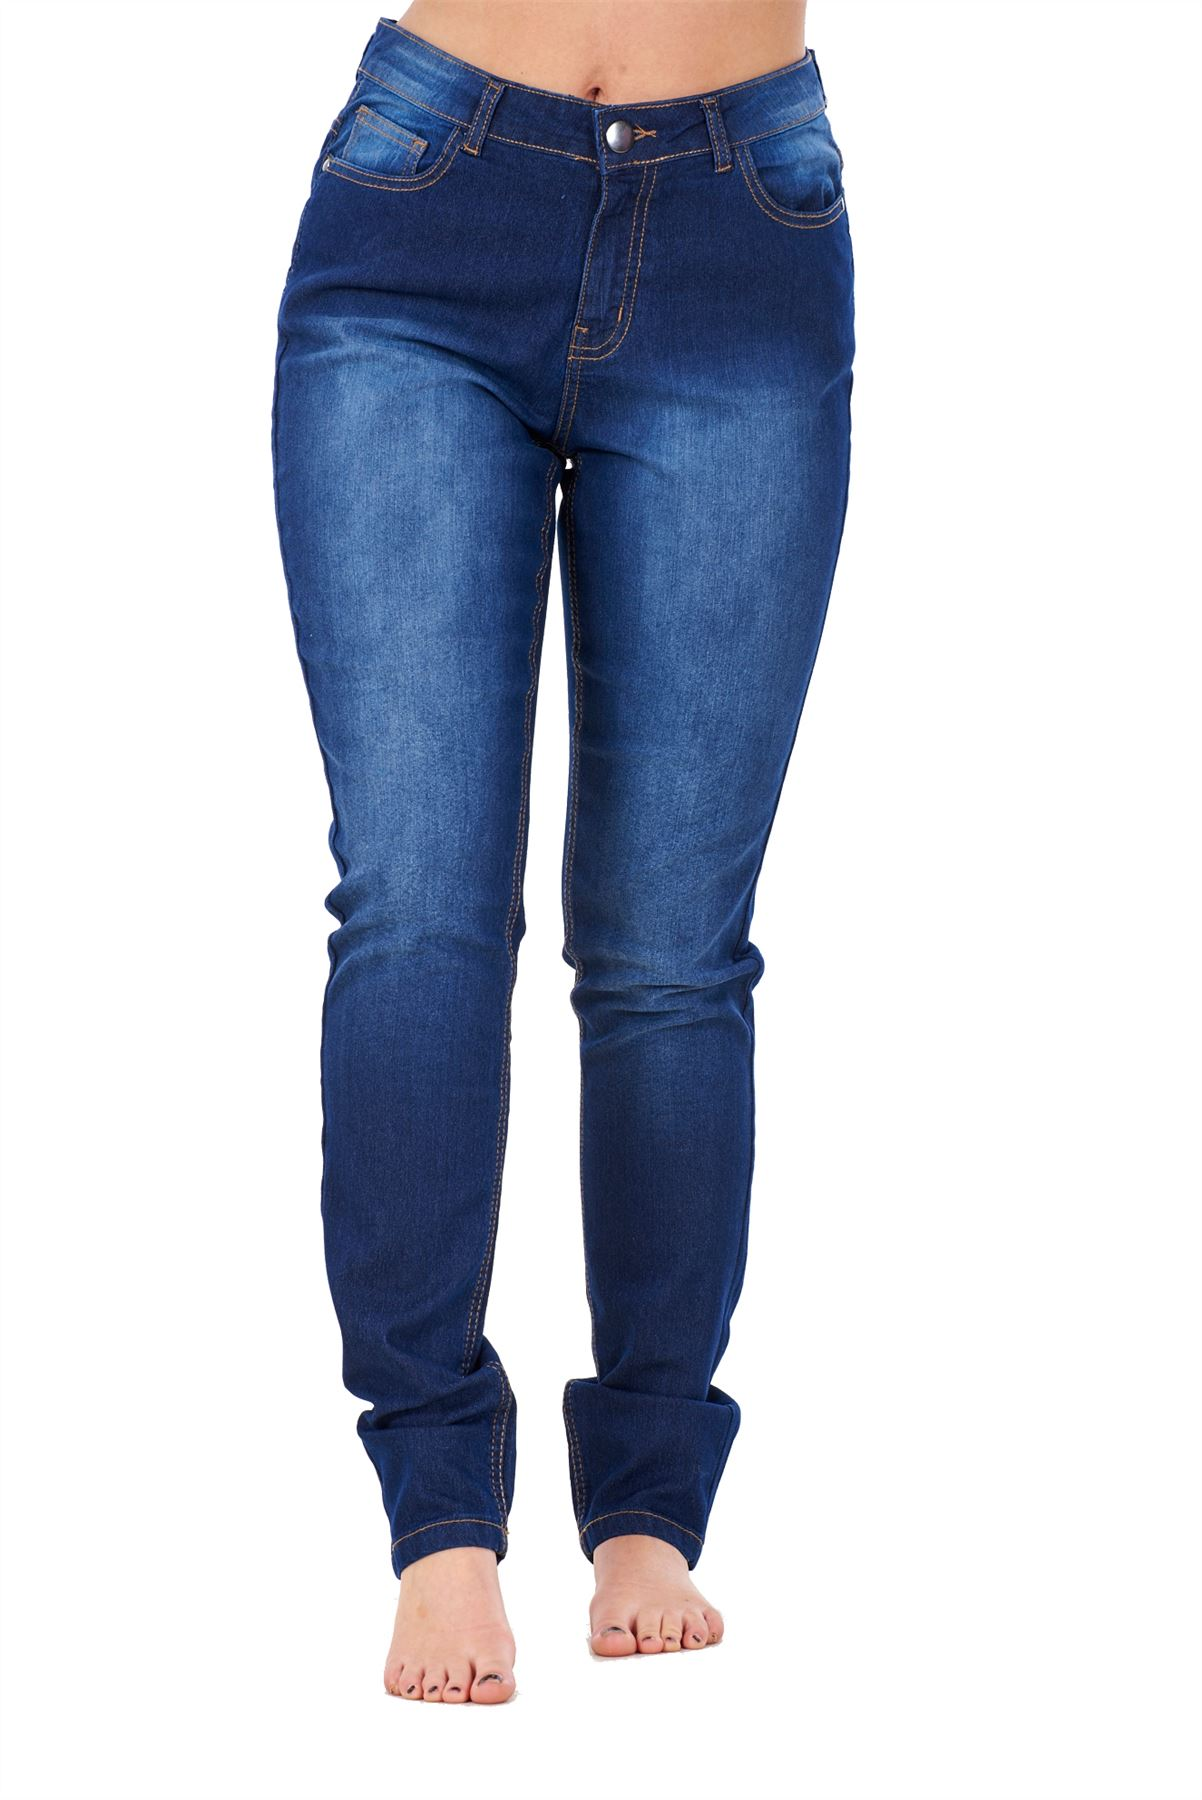 Ladies-Stretch-Jeans-Denim-cotton-Zip-fly-High-Waisted-Slim-Fit-Trousers-Pants thumbnail 15